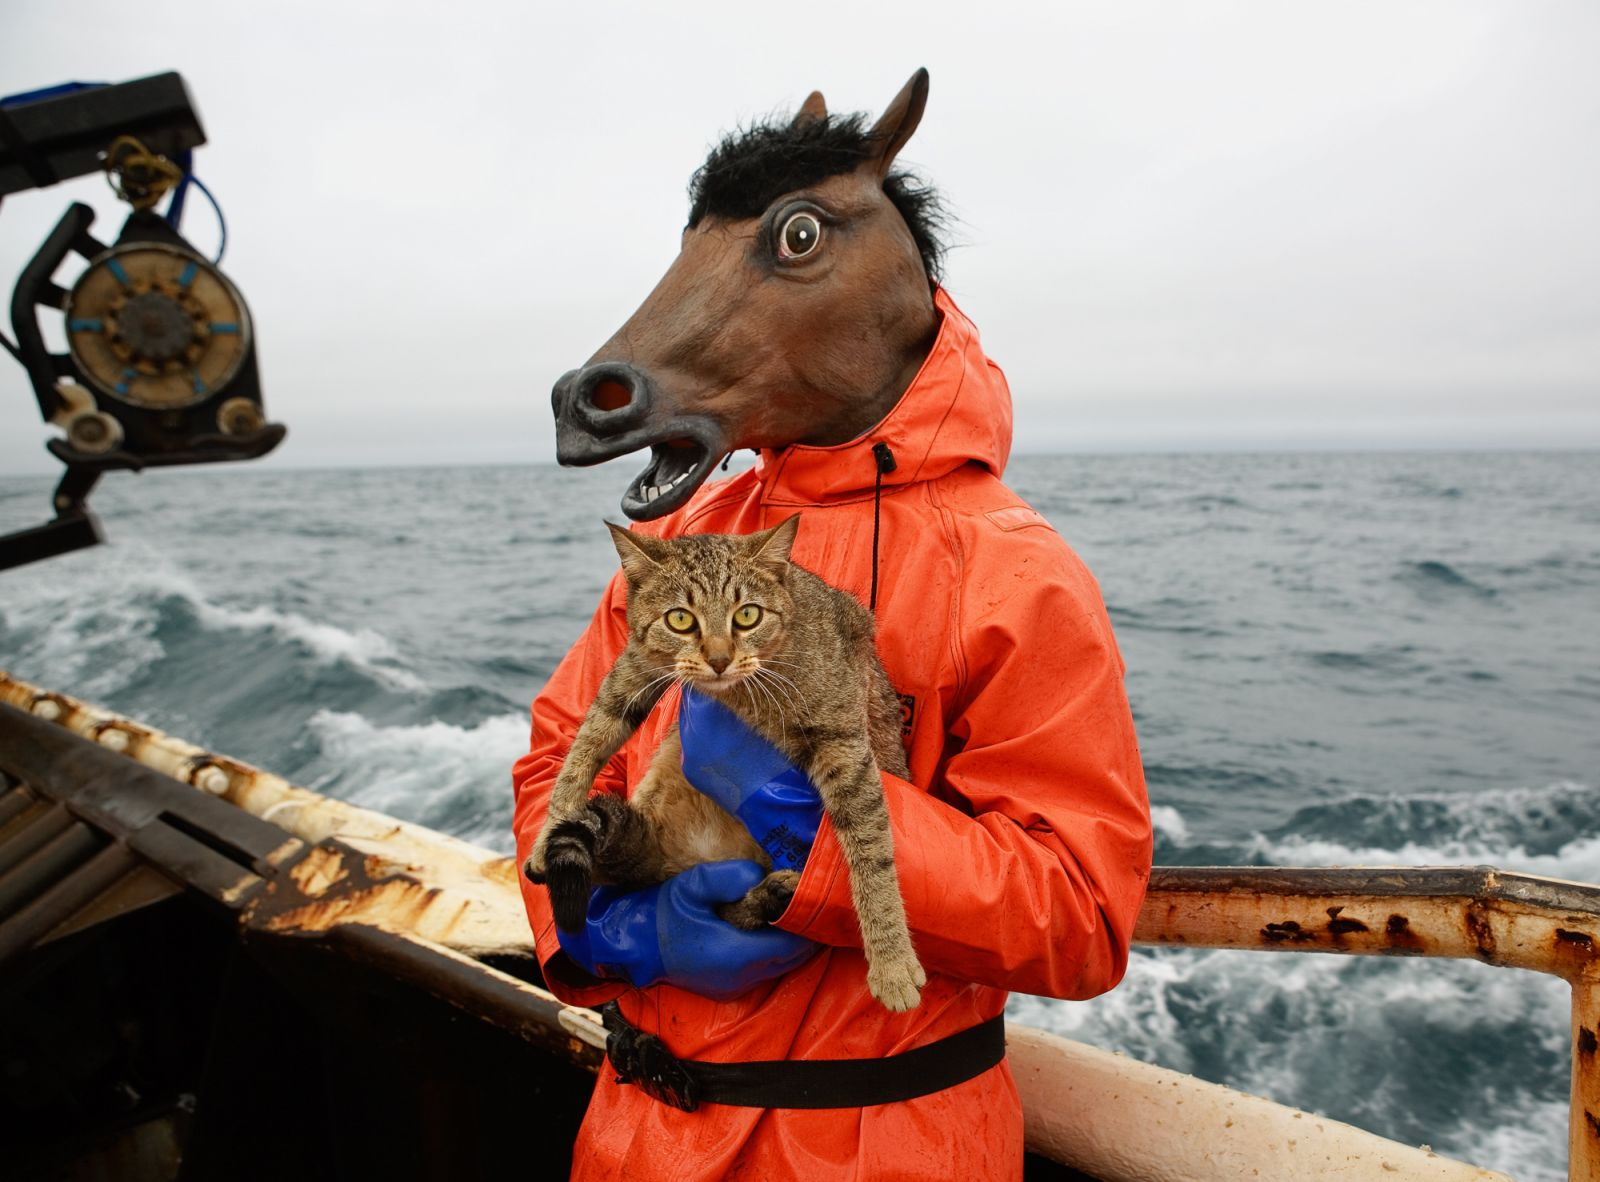 Kitty_and_Horse_Fisherman